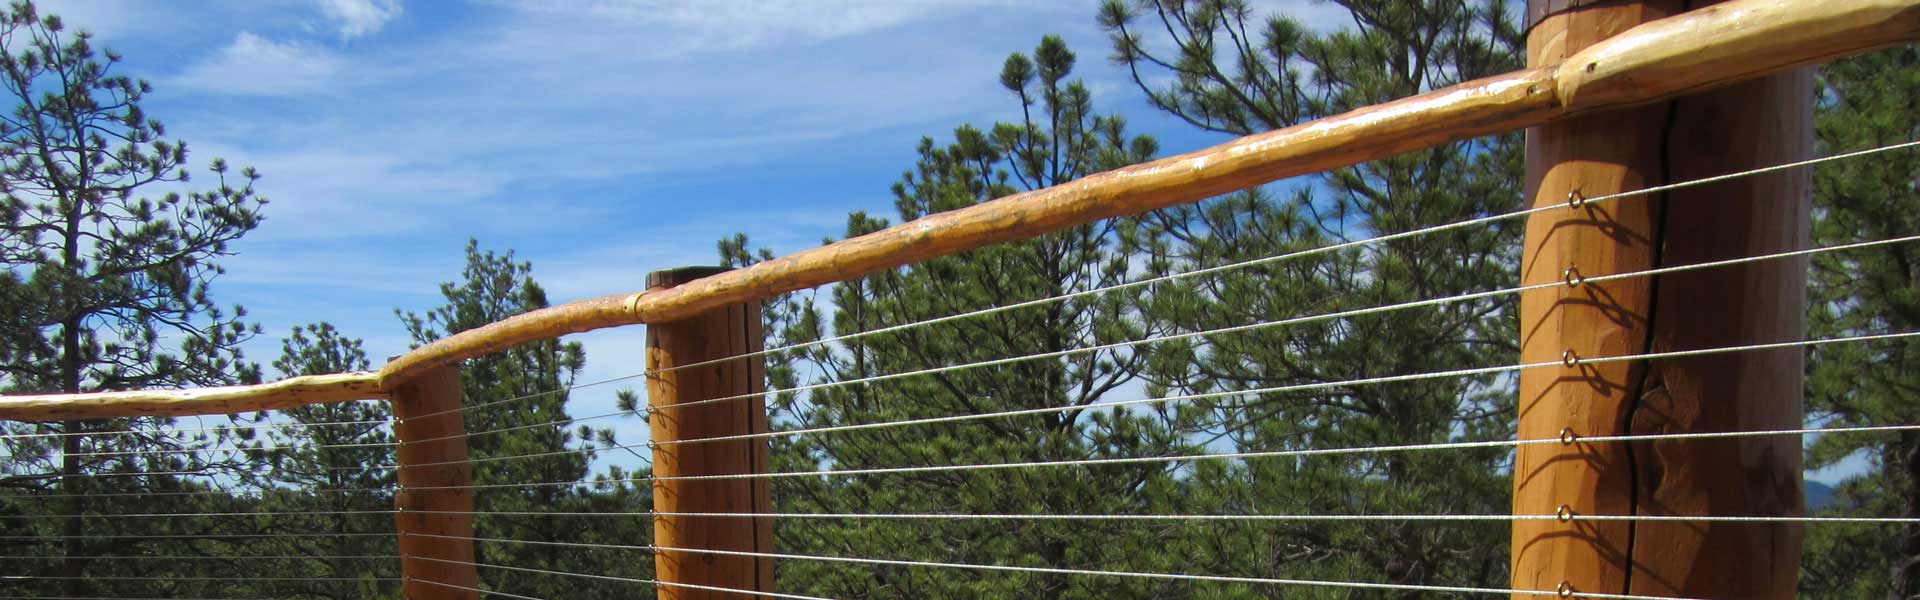 Cable Railing Deck and Infill Systems | Cable Railing Direct